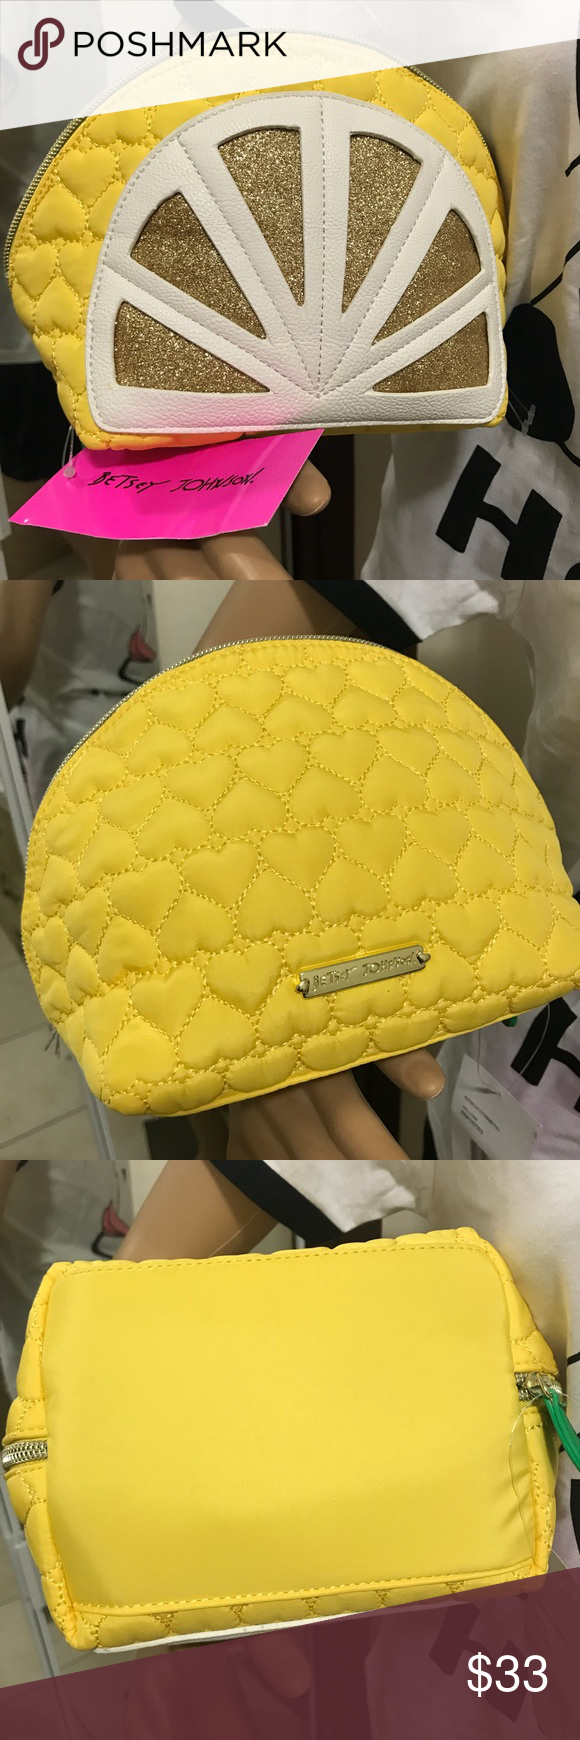 Betsy Johnson 🍋 cosmetic bag Pop up with this Lemon